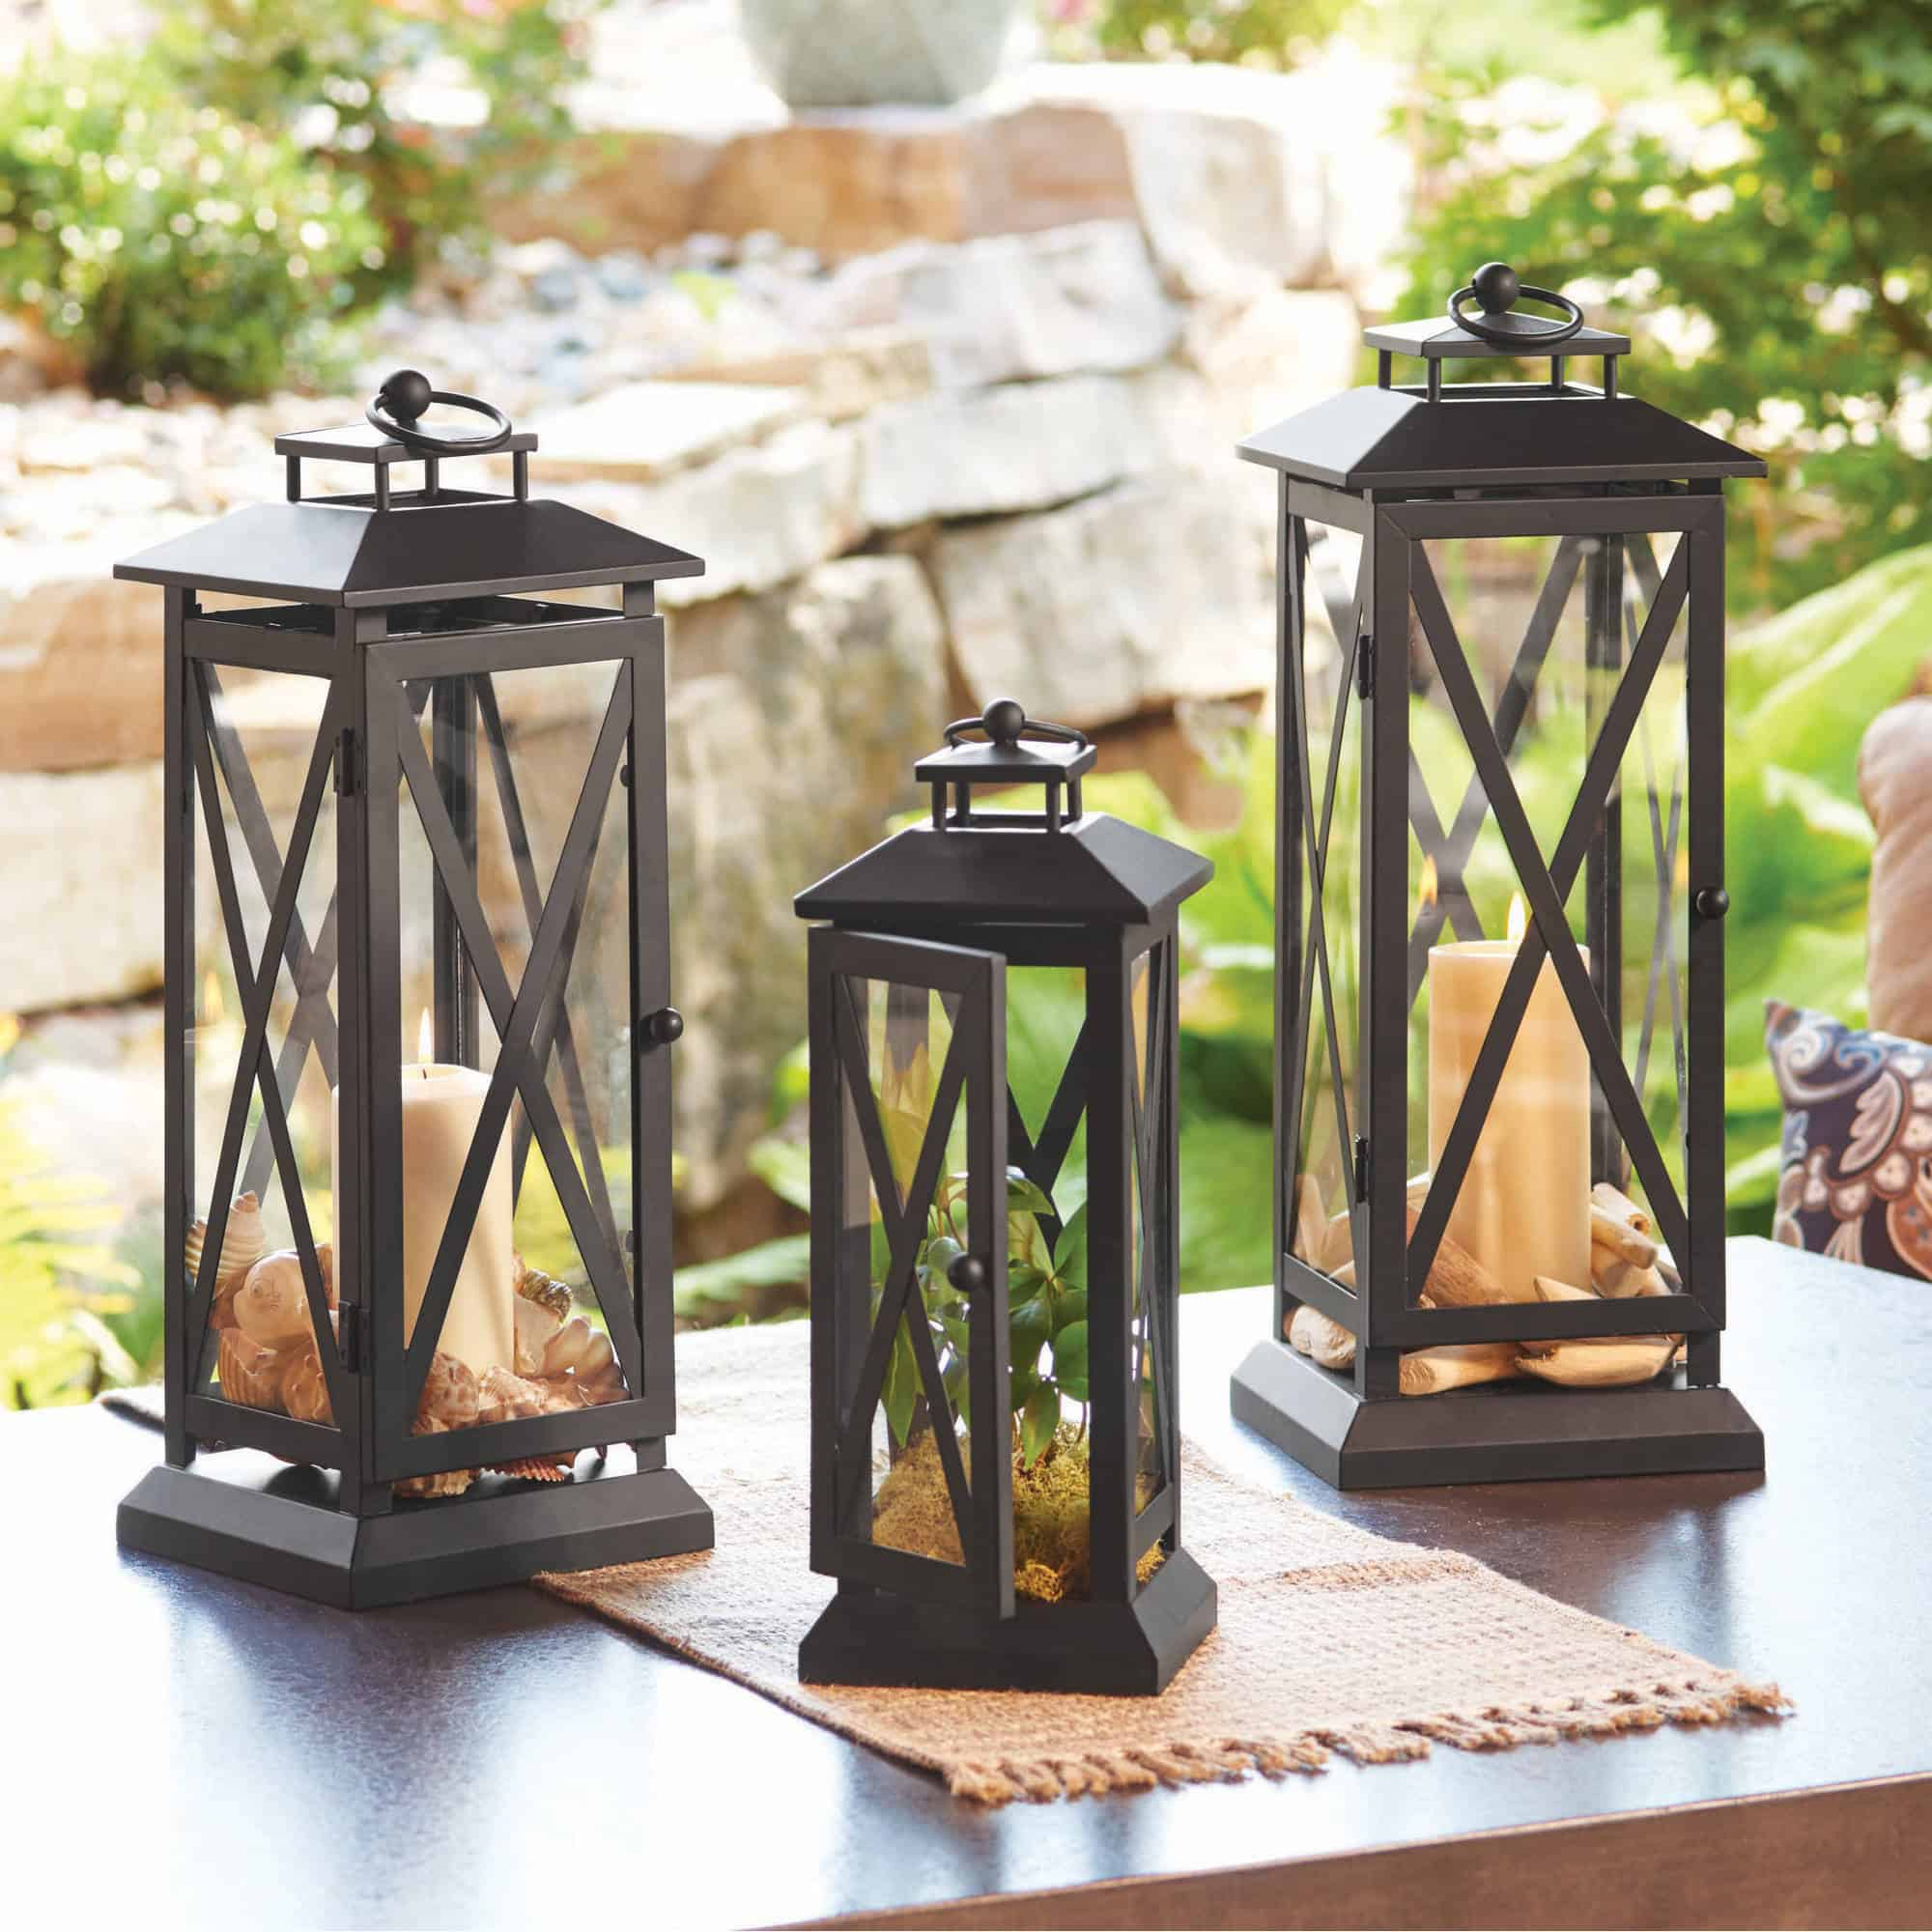 Lanterns with some sort of intricate shape or design are best as they give the illusion of more charm in the space.